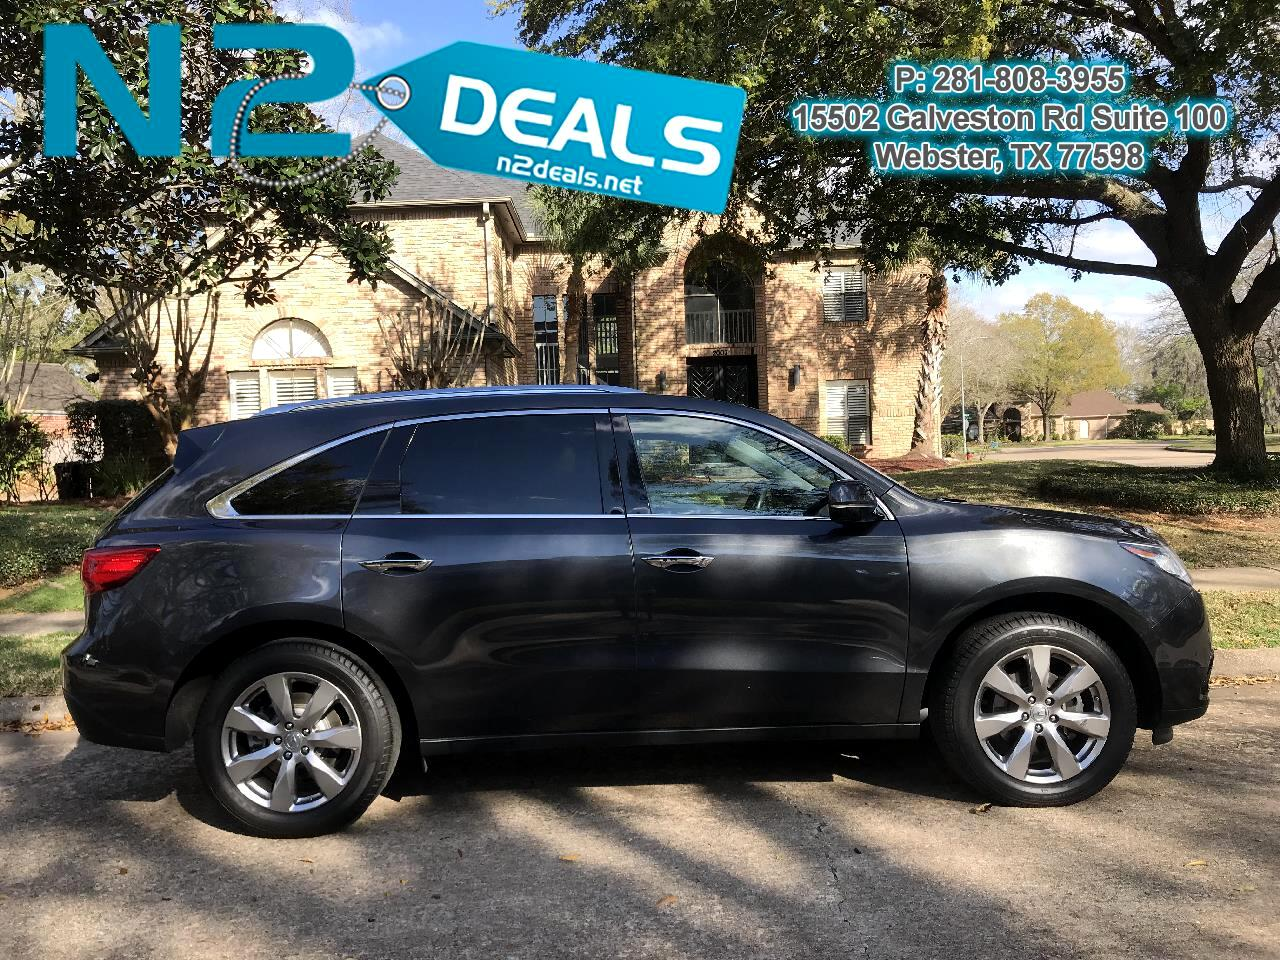 Acura MDX 9-Spd AT w/ Tech, Entertainment & AcuraWatch Plus 2016